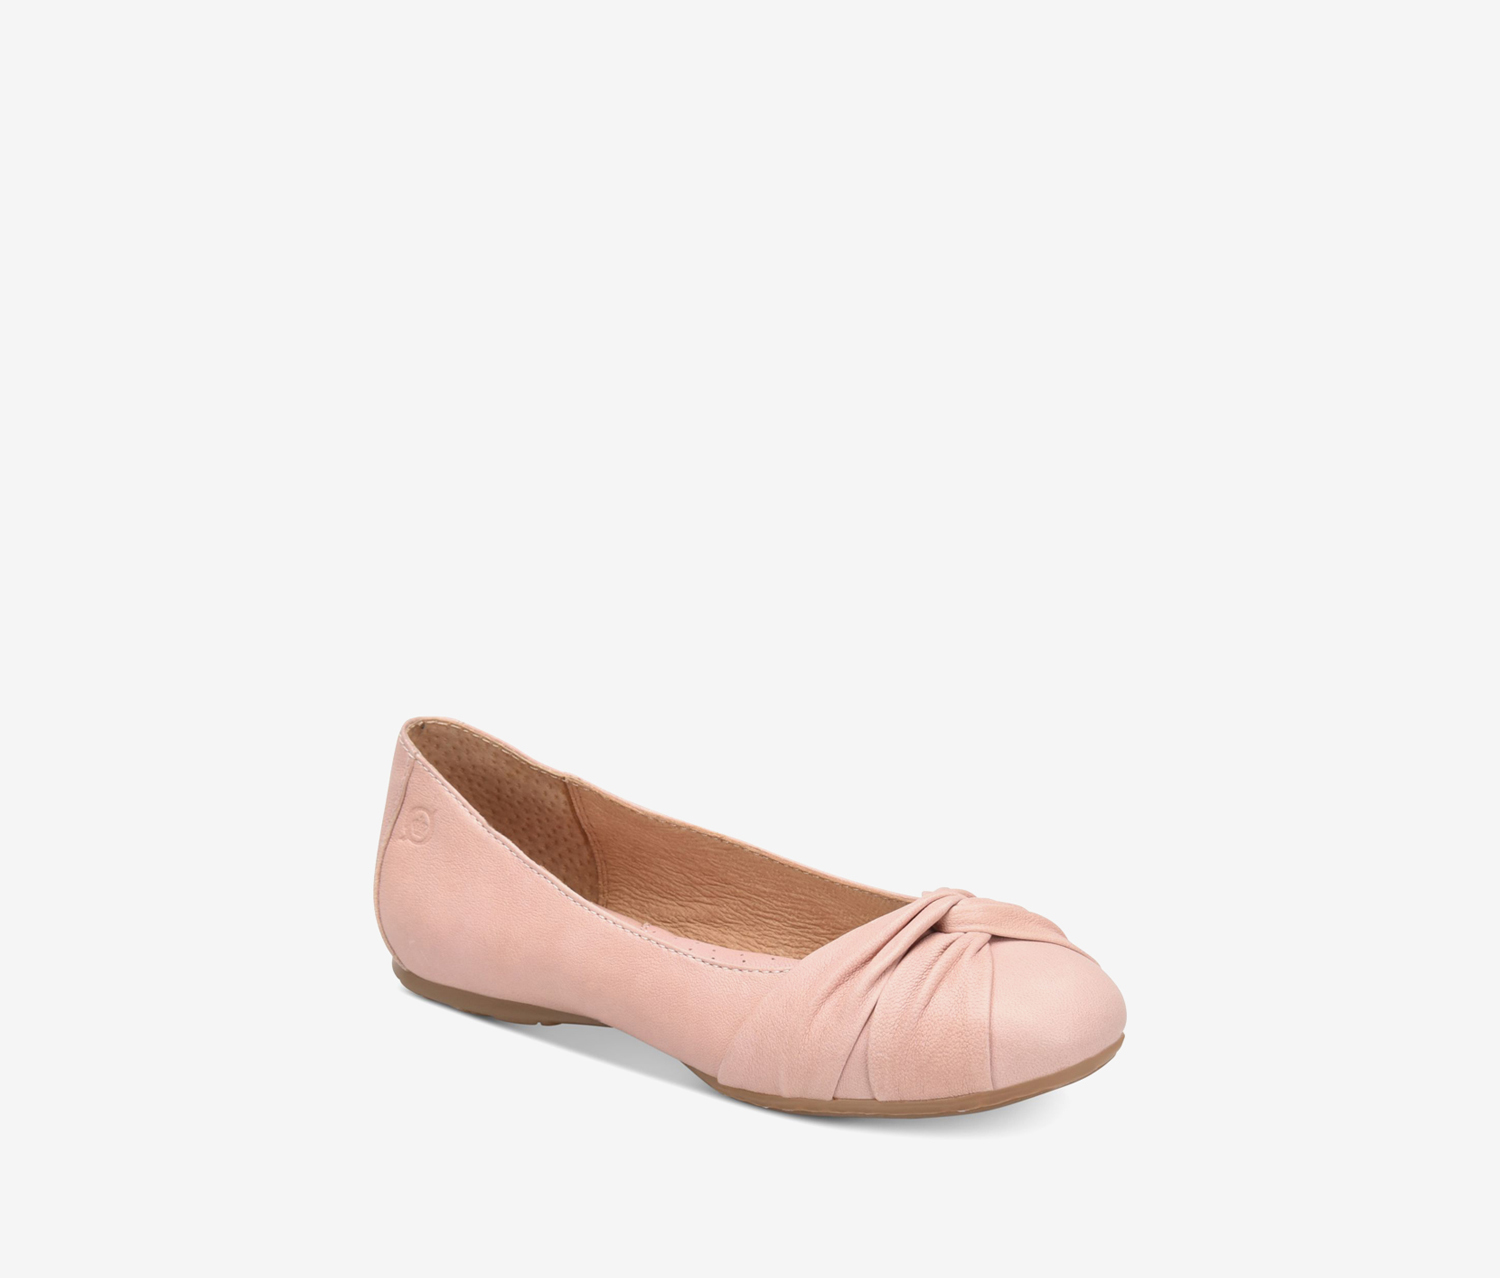 Womens Lilly Leather Round Toe Ballet Flats, Light Pink